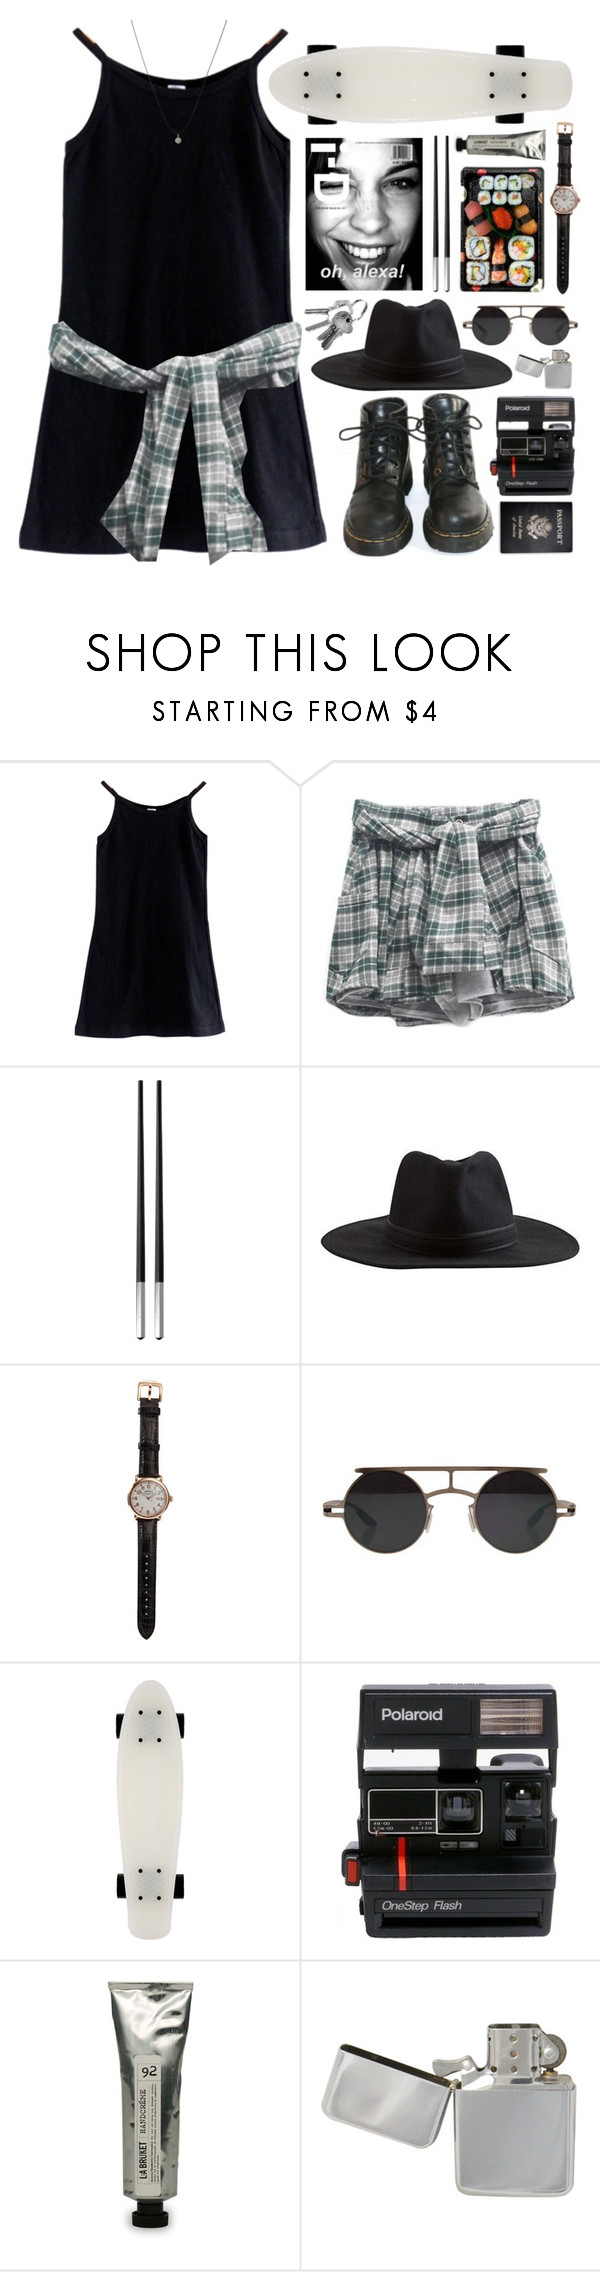 """III. telegraph ave."" by beachy-palms ❤ liked on Polyvore featuring American Apparel, Dr. Martens, Christofle, Jura, Element, Shinola, Retrò, Polaroid, Passport and L:A Bruket"